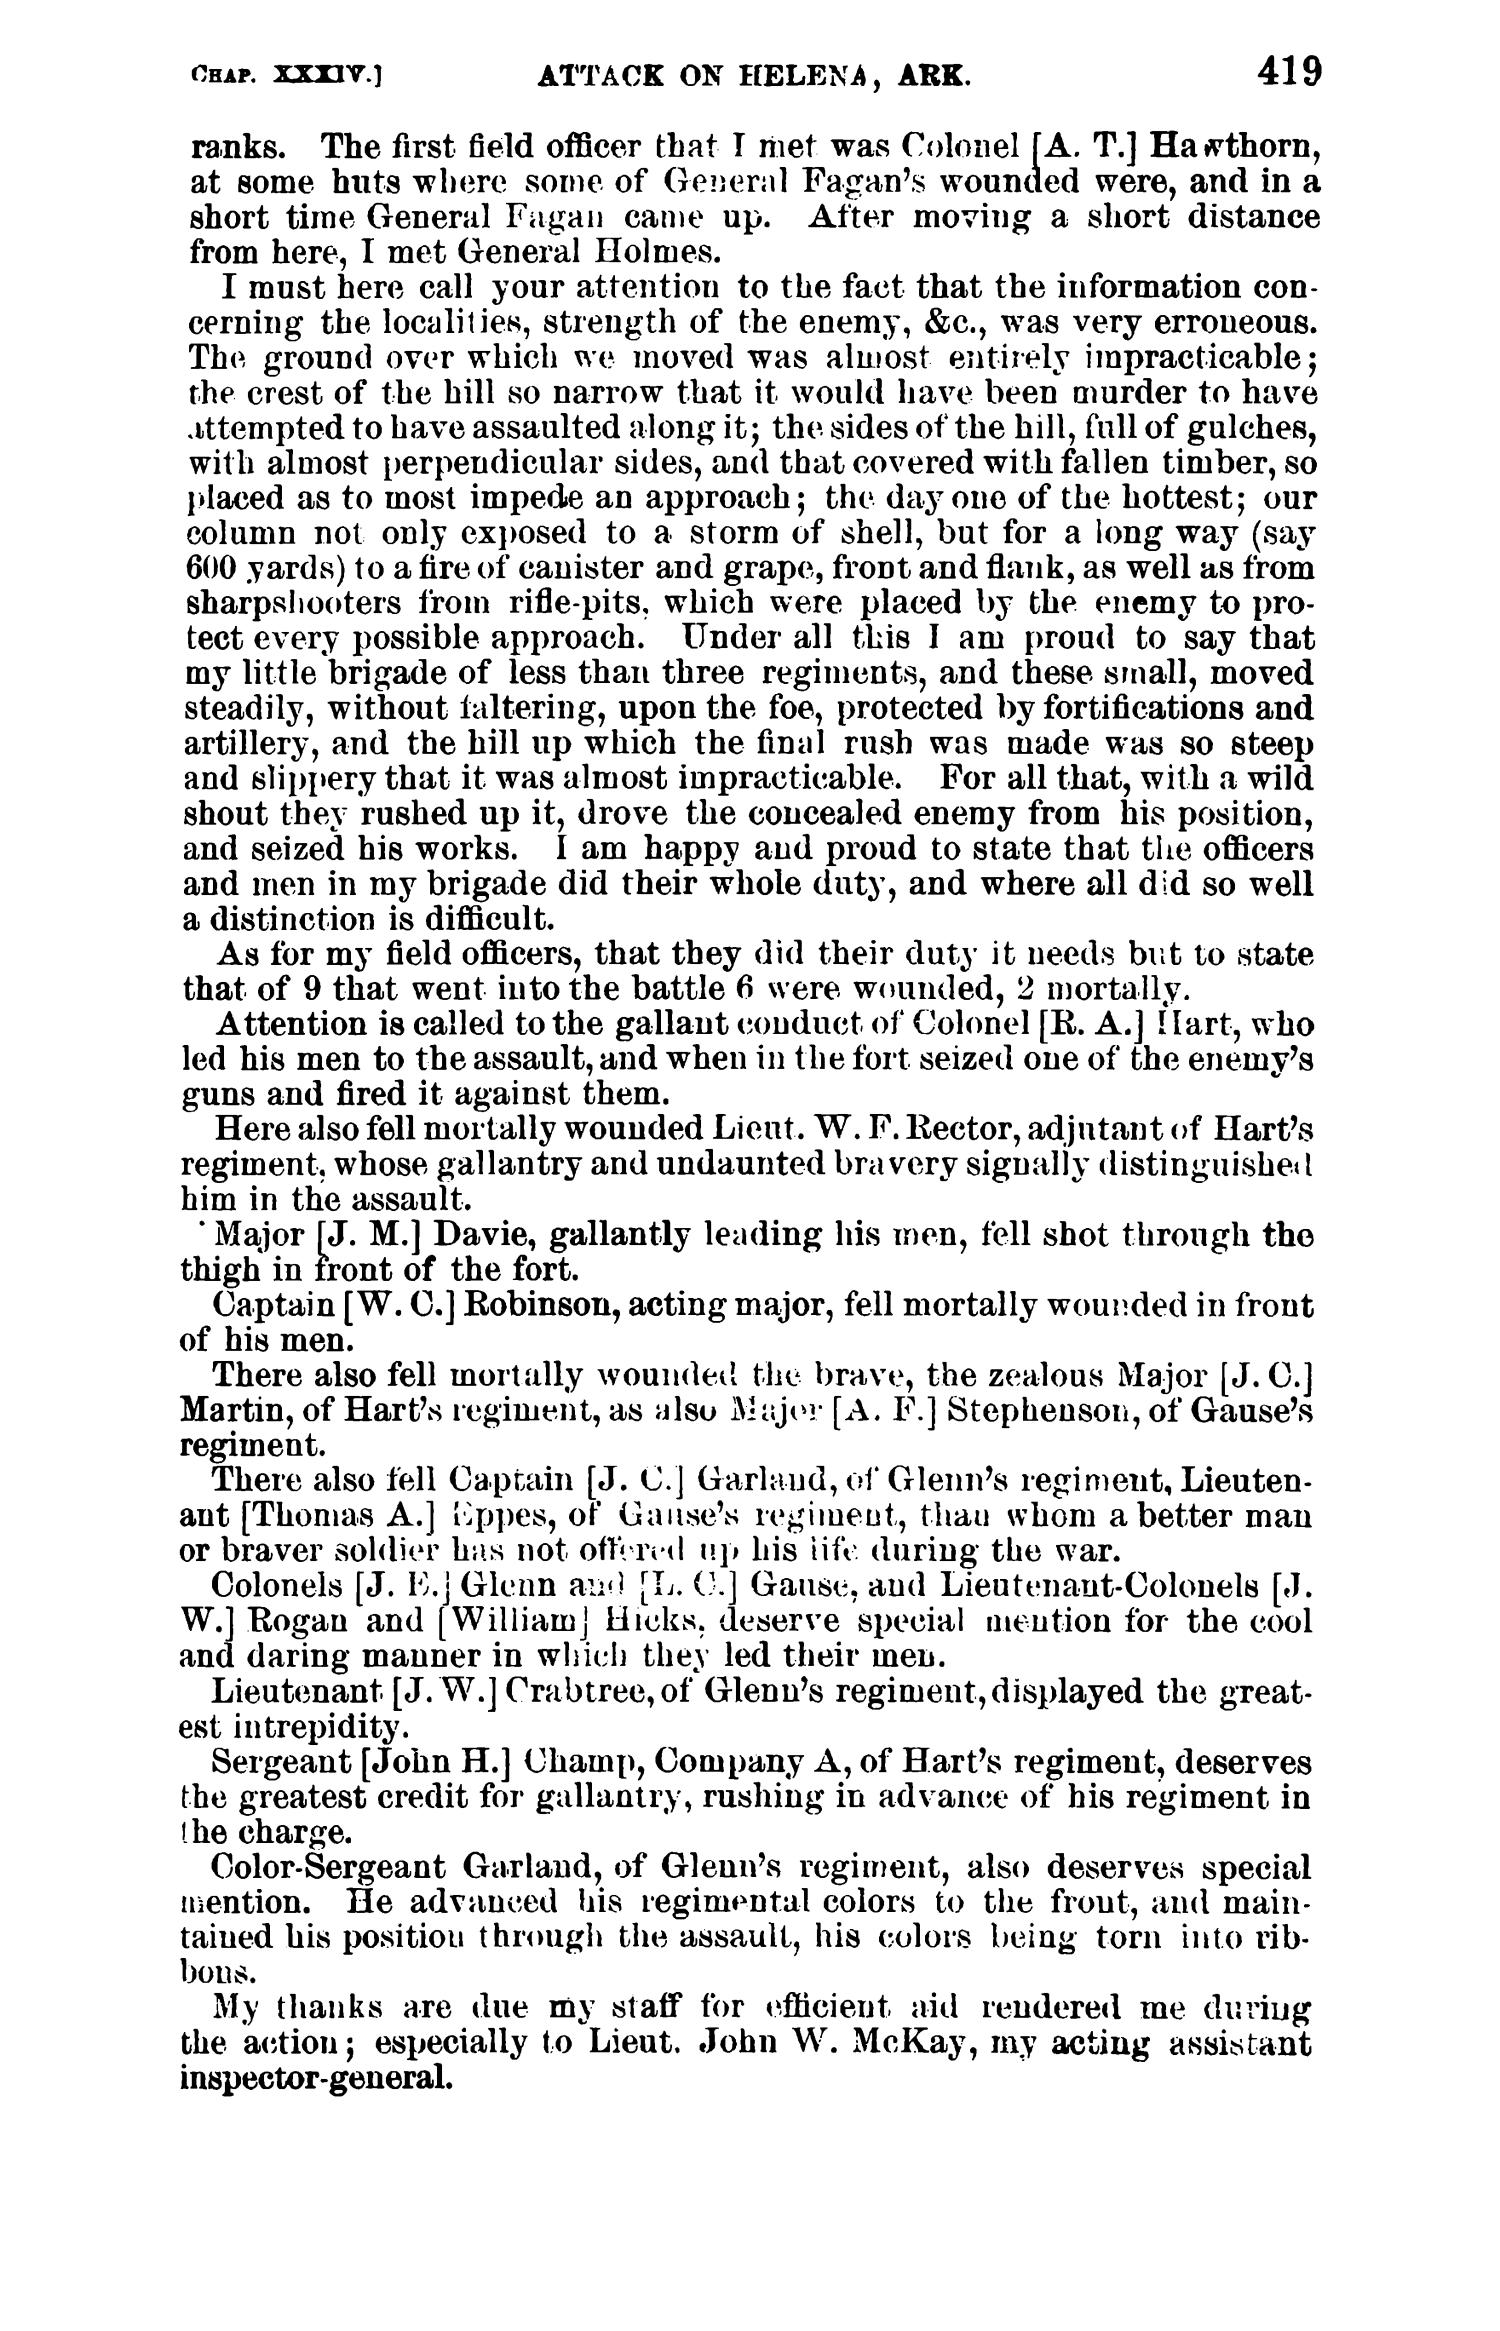 The War of the Rebellion: A Compilation of the Official Records of the Union And Confederate Armies. Series 1, Volume 22, In Two Parts. Part 1, Reports.                                                                                                      419